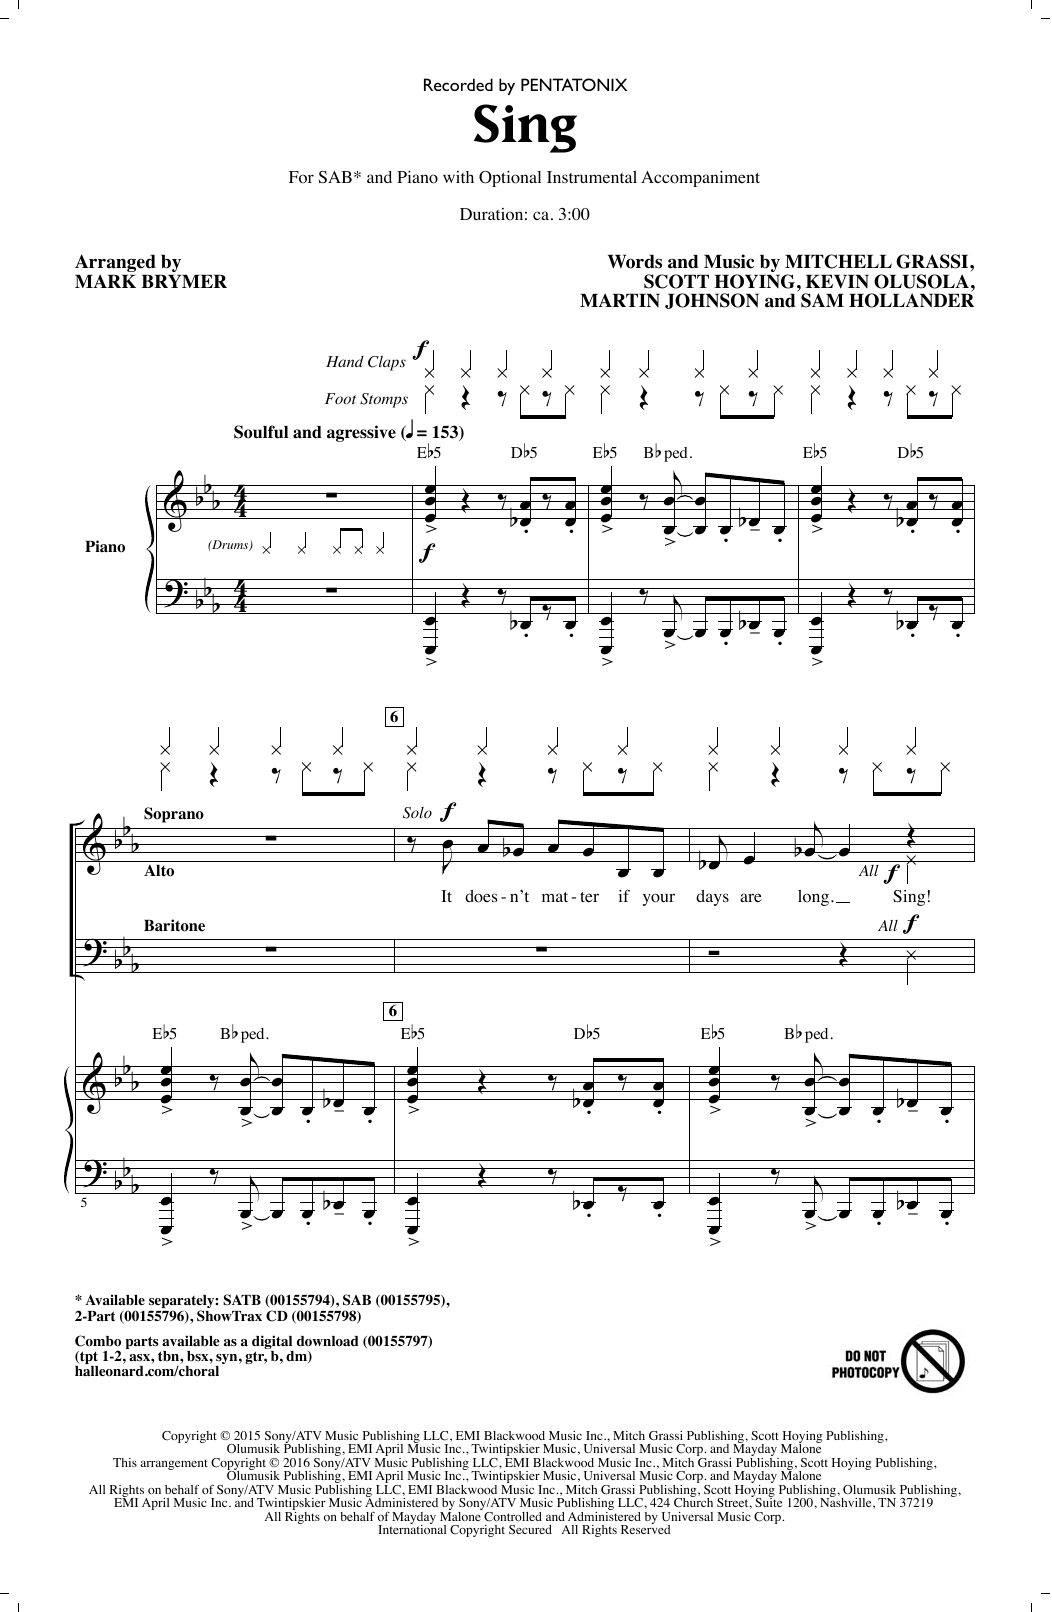 Pentatonix Sing (arr. Mark Brymer) sheet music notes and chords